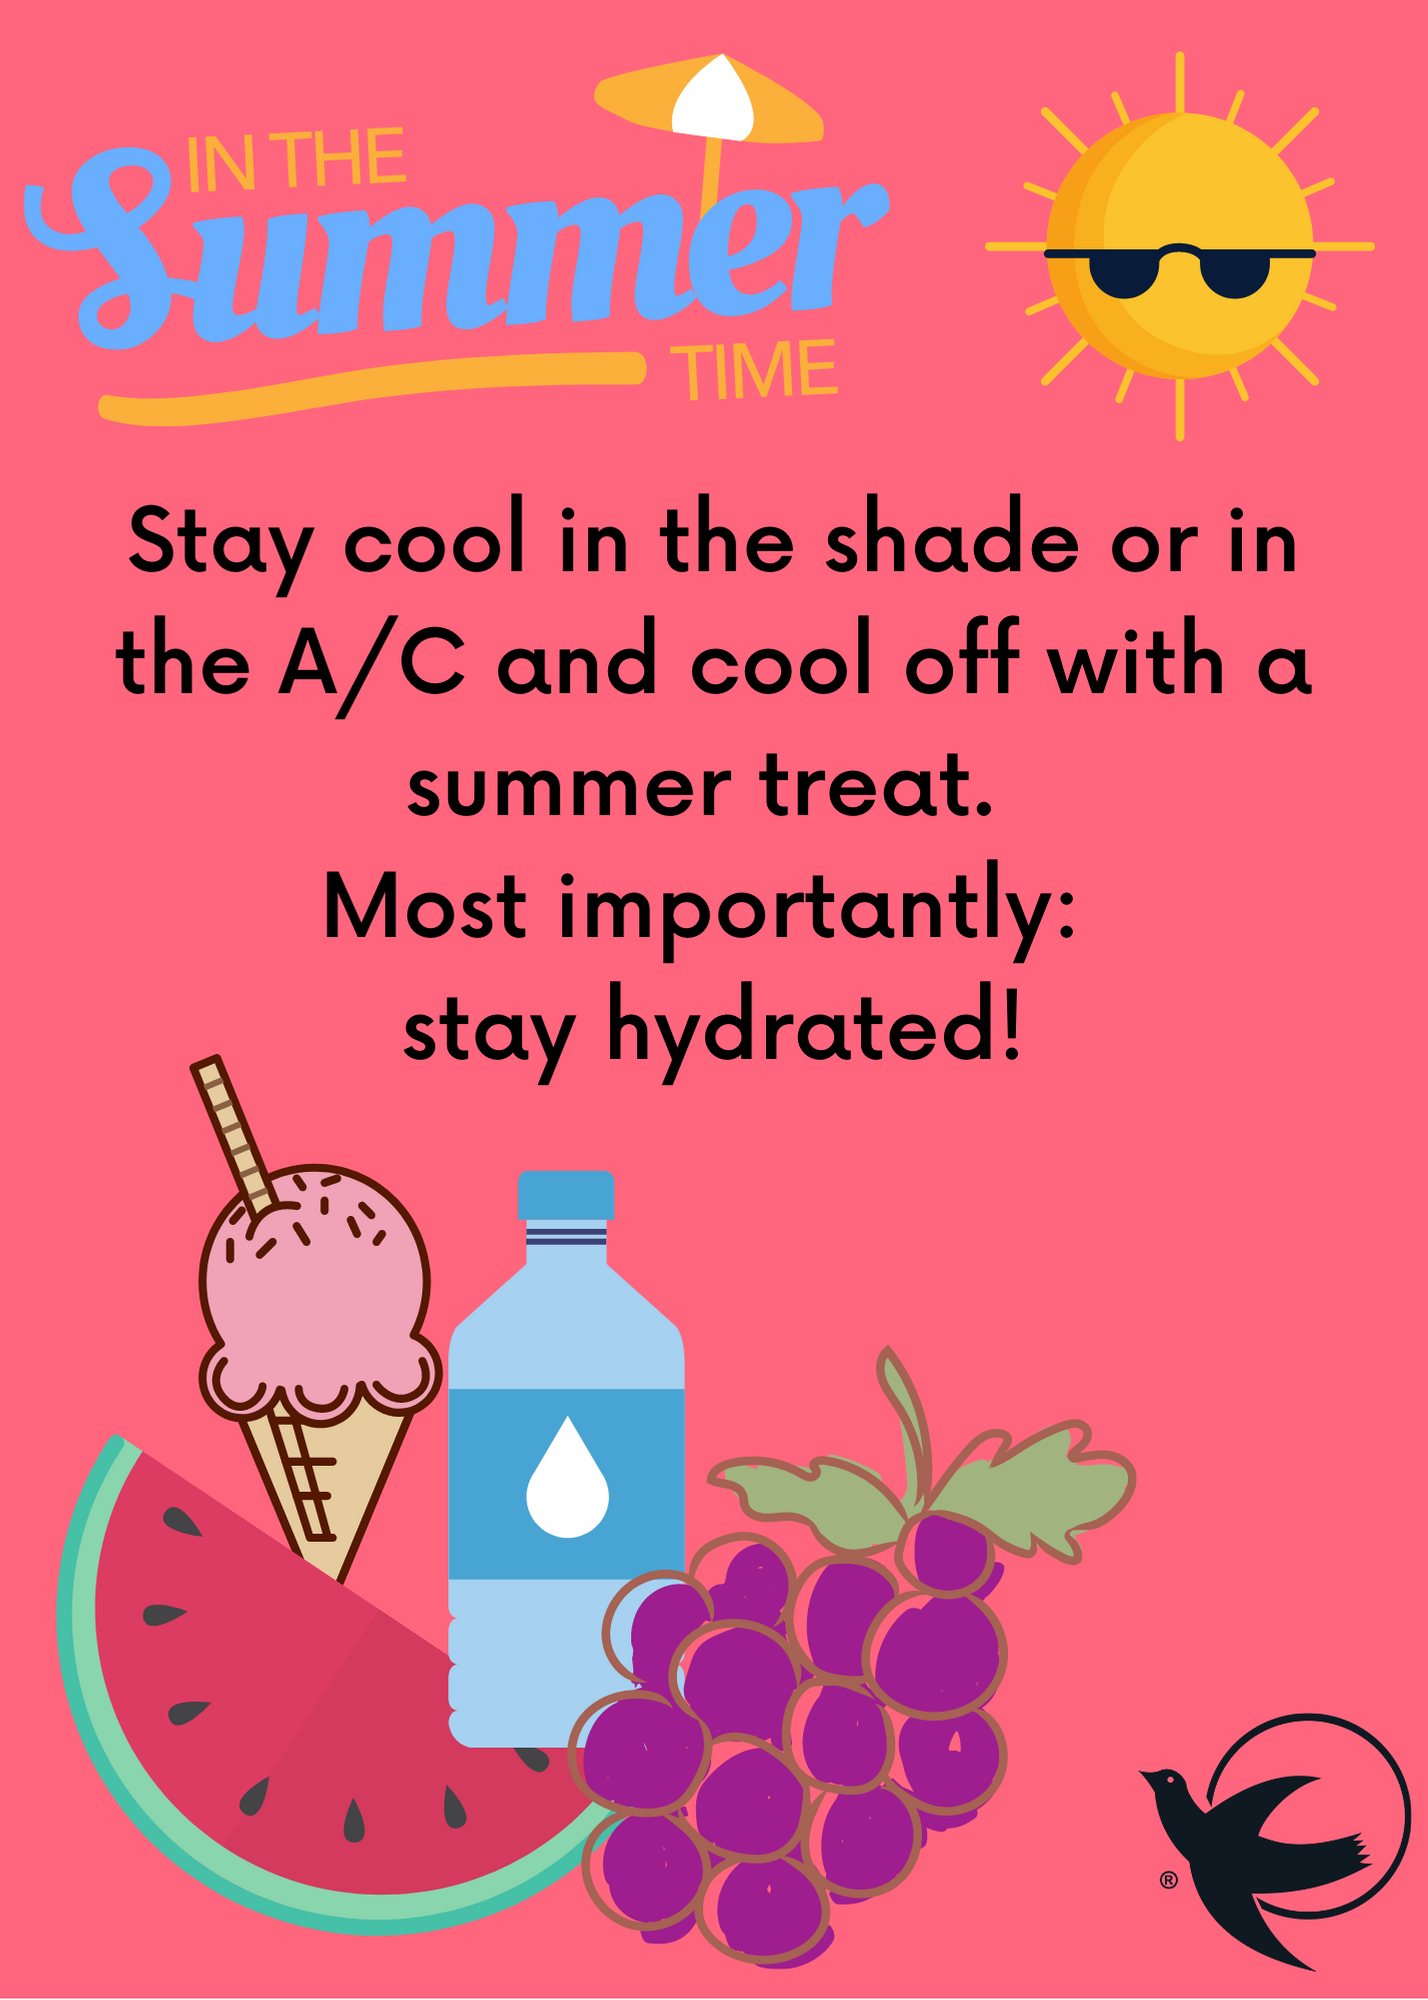 Help Seniors Stay Cool in the Summertime